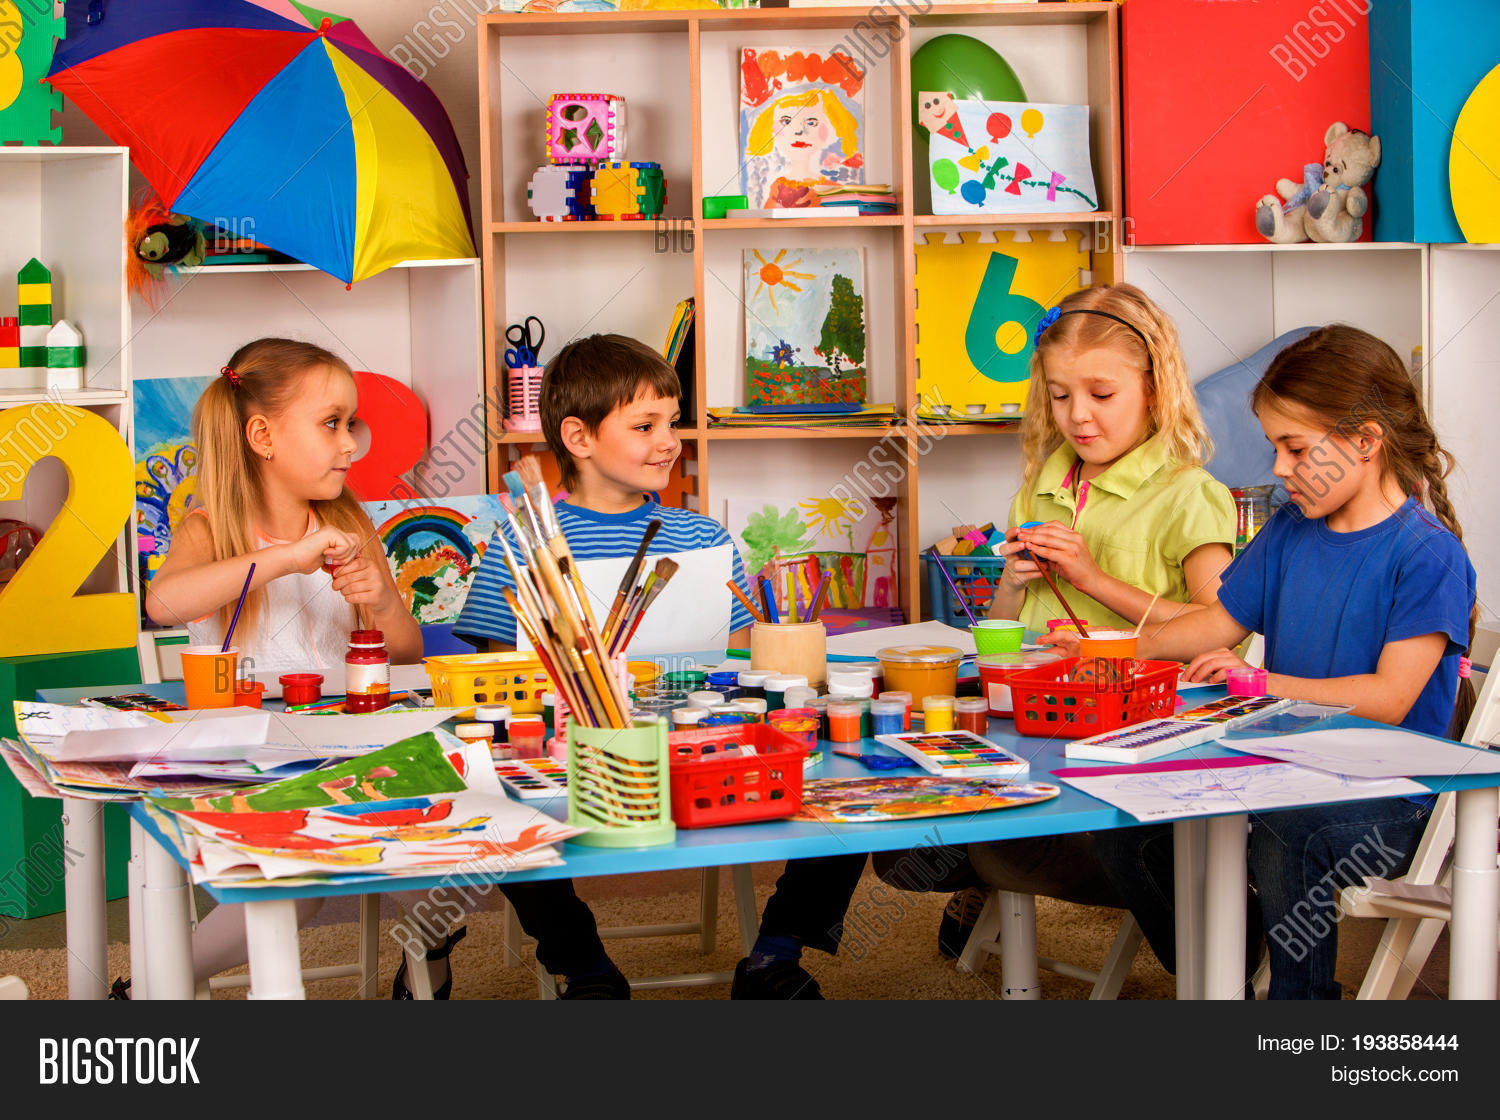 Small Students Image & Photo (Free Trial) | Bigstock